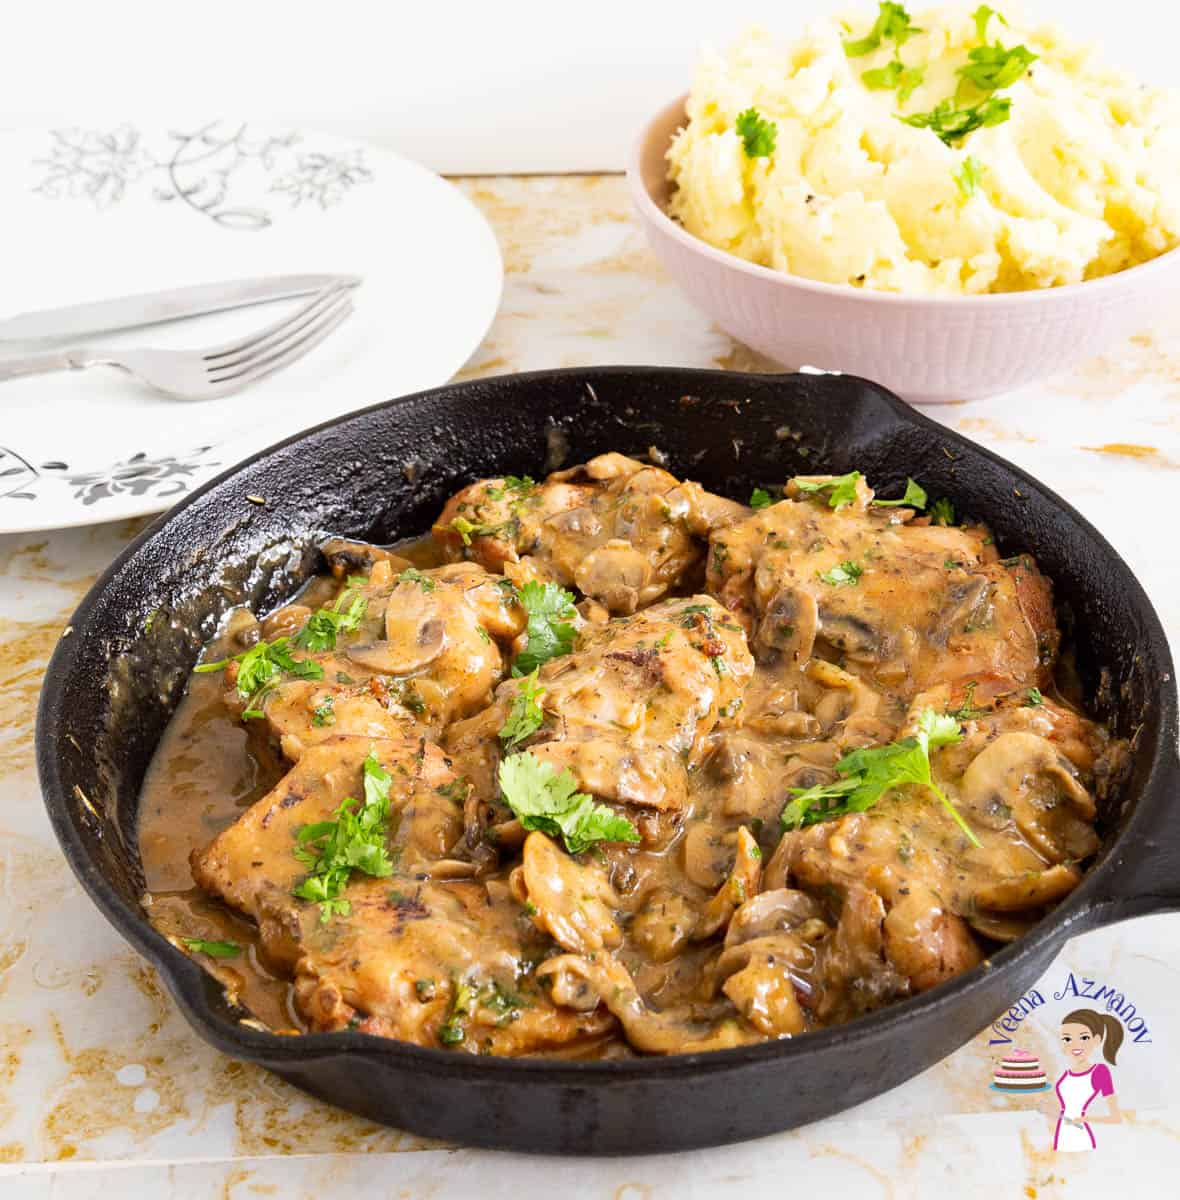 Homemade Skillet Chicken cooked with Mushroom Gravy in just 20 minutes.